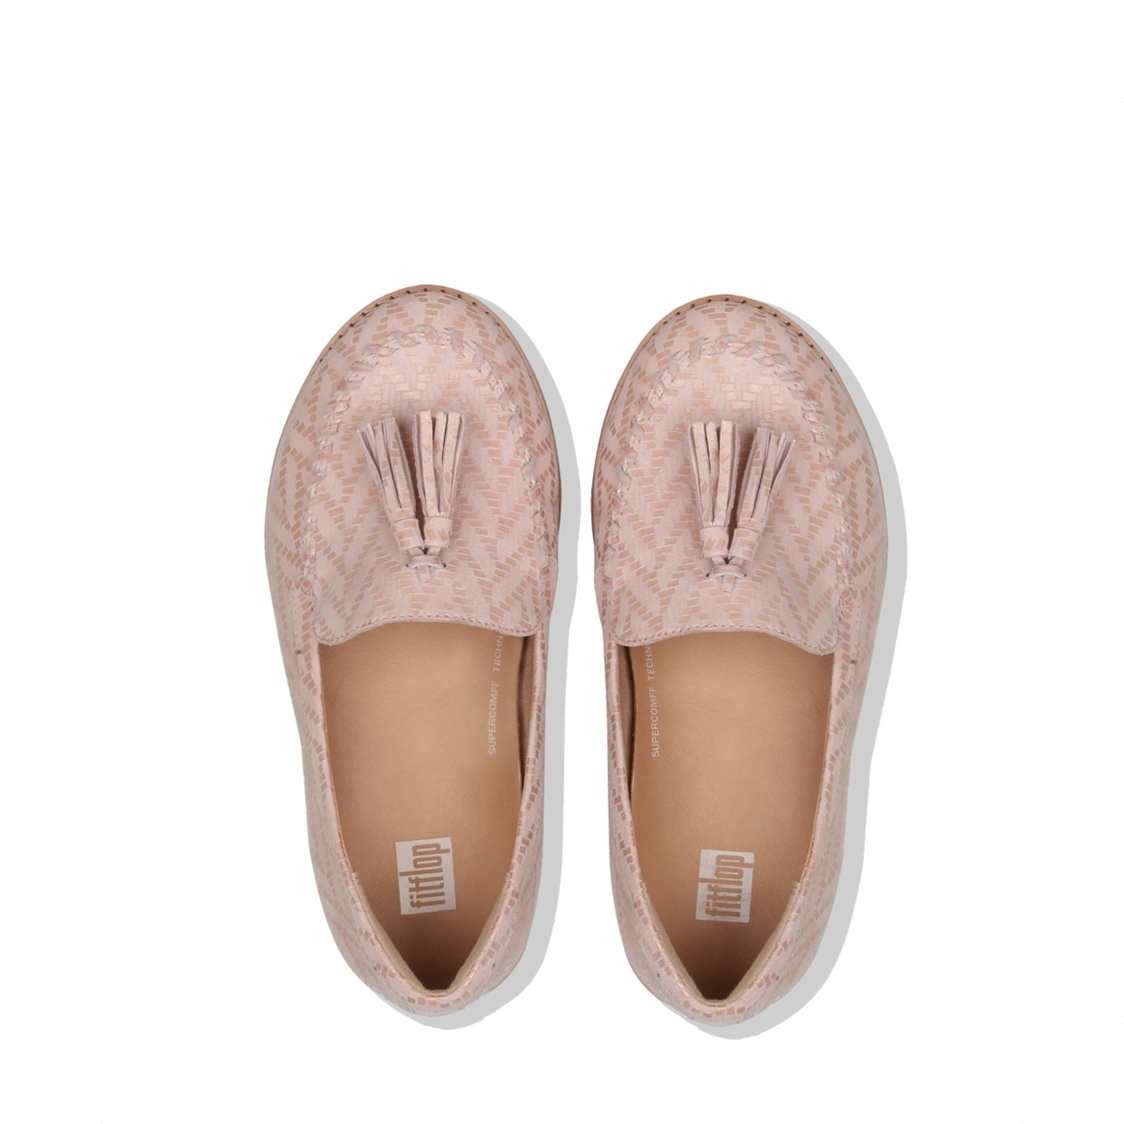 Petrina Chevron-Suede Moccasin Loafers Oyster Pink